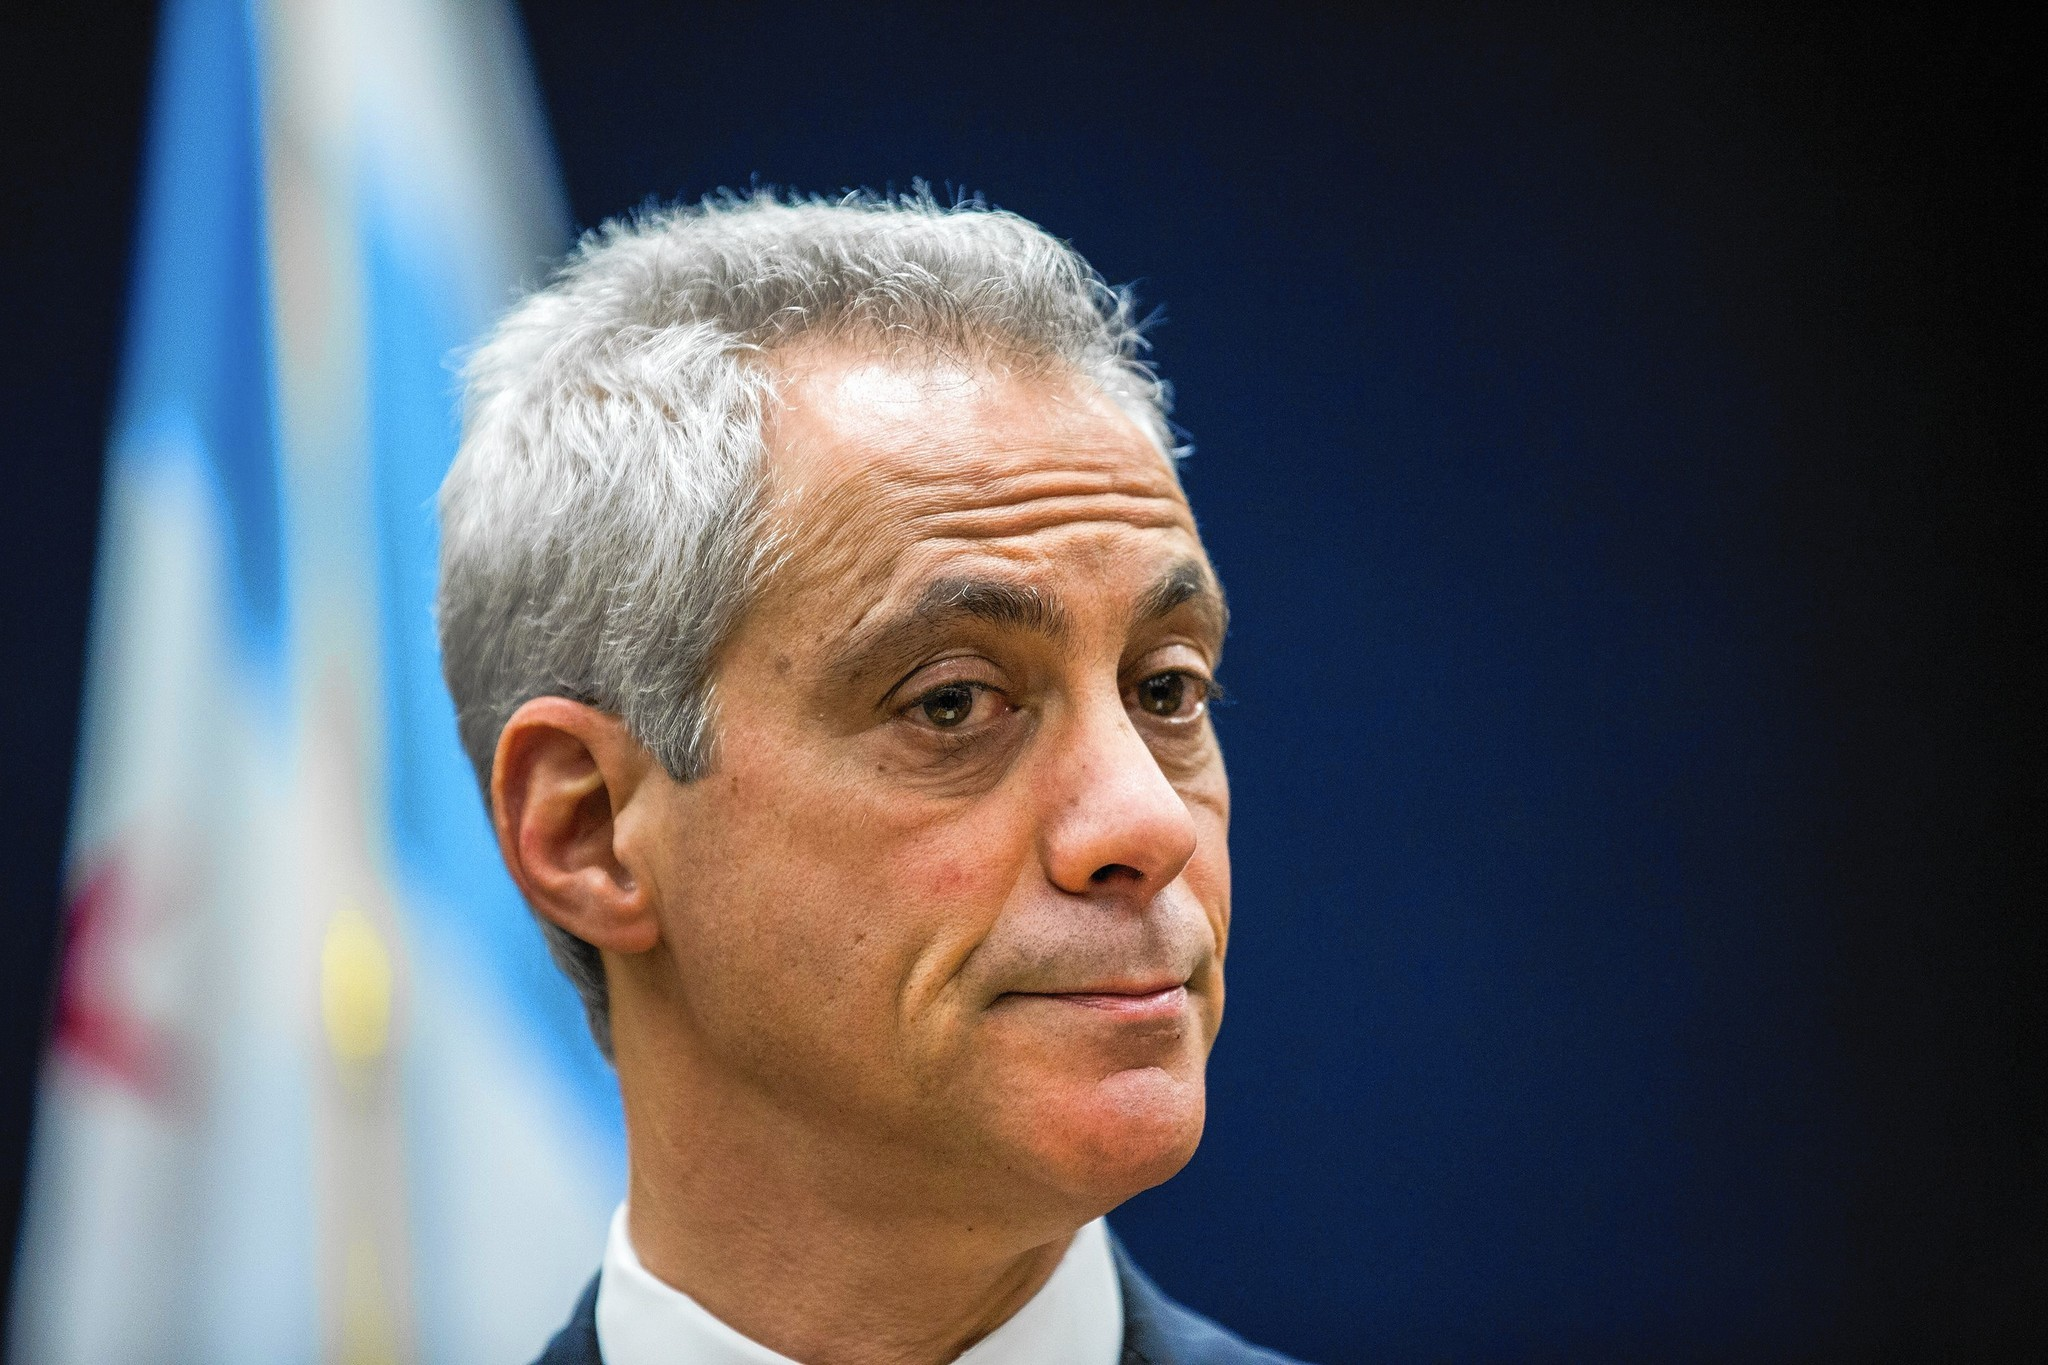 Mayor to speak about police misconduct at City Council